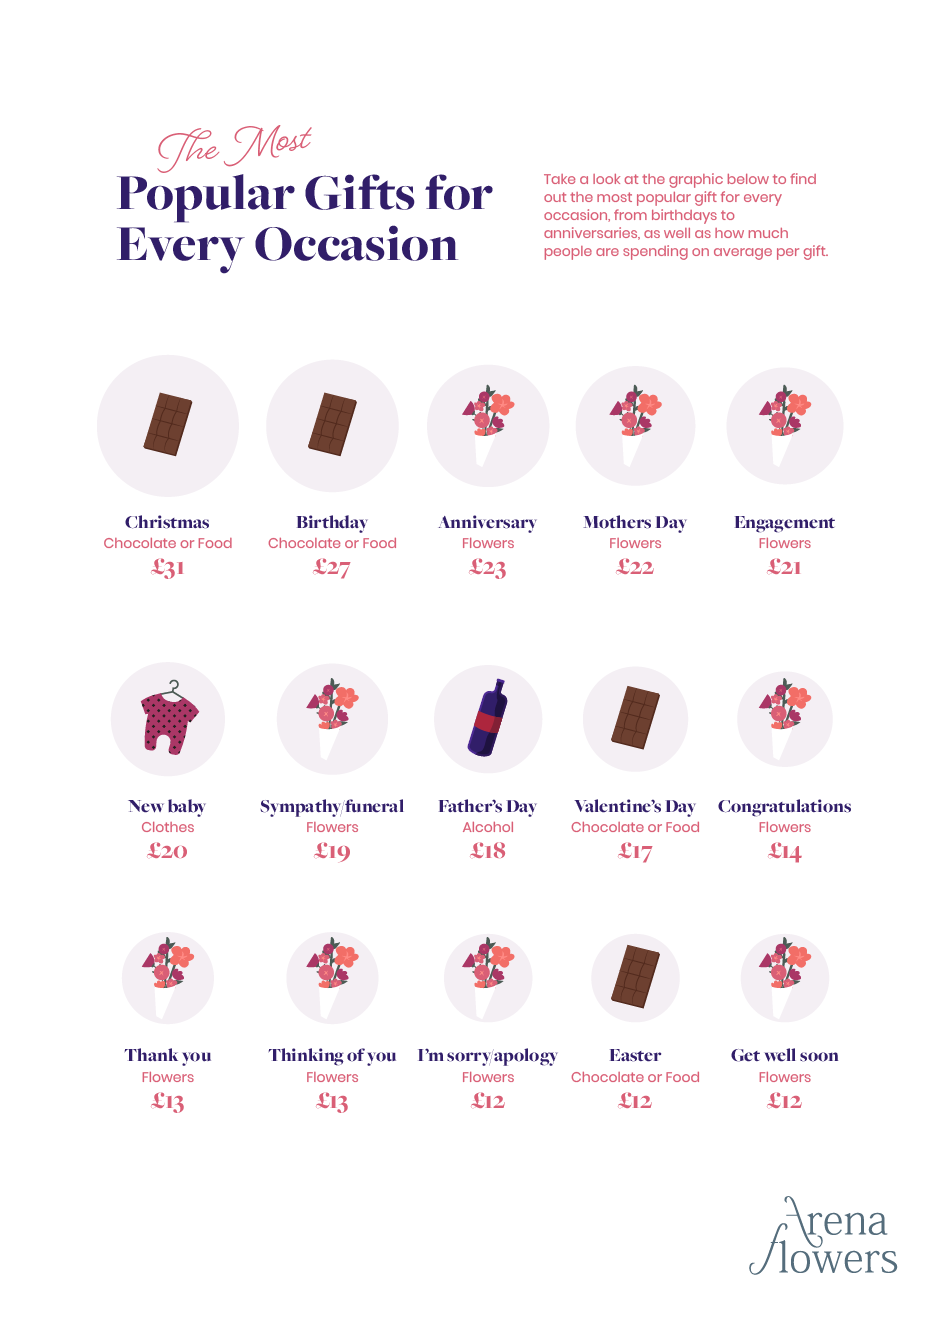 graphic showing the most popular gifts for each occasion